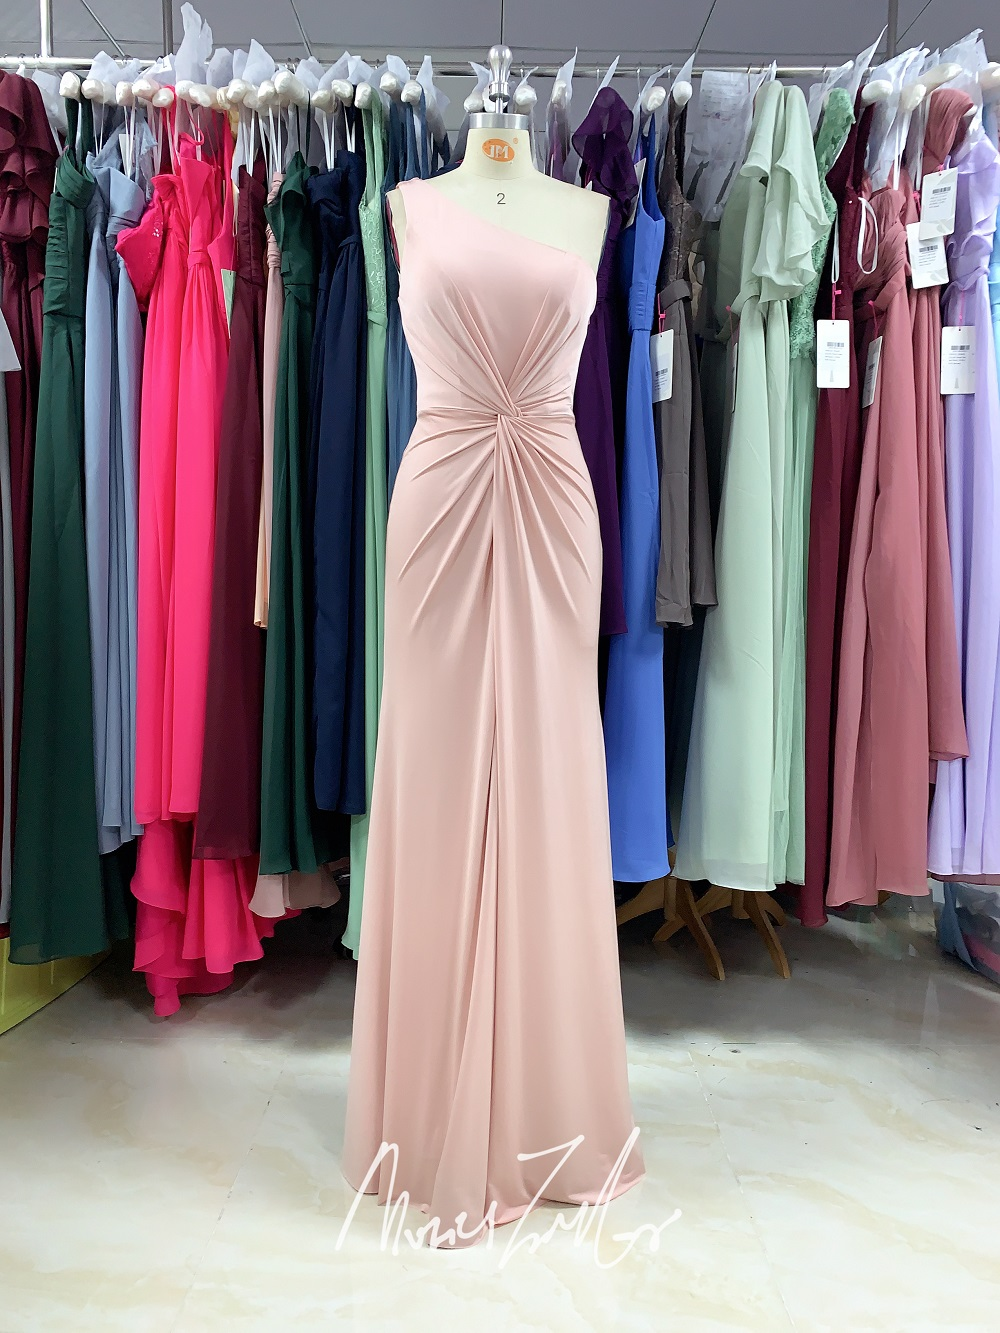 soft pink Stretch fabric Evening Dress 2020 one shoulder Pleats Sequins True picture luckgirls prom dress mocini tailor